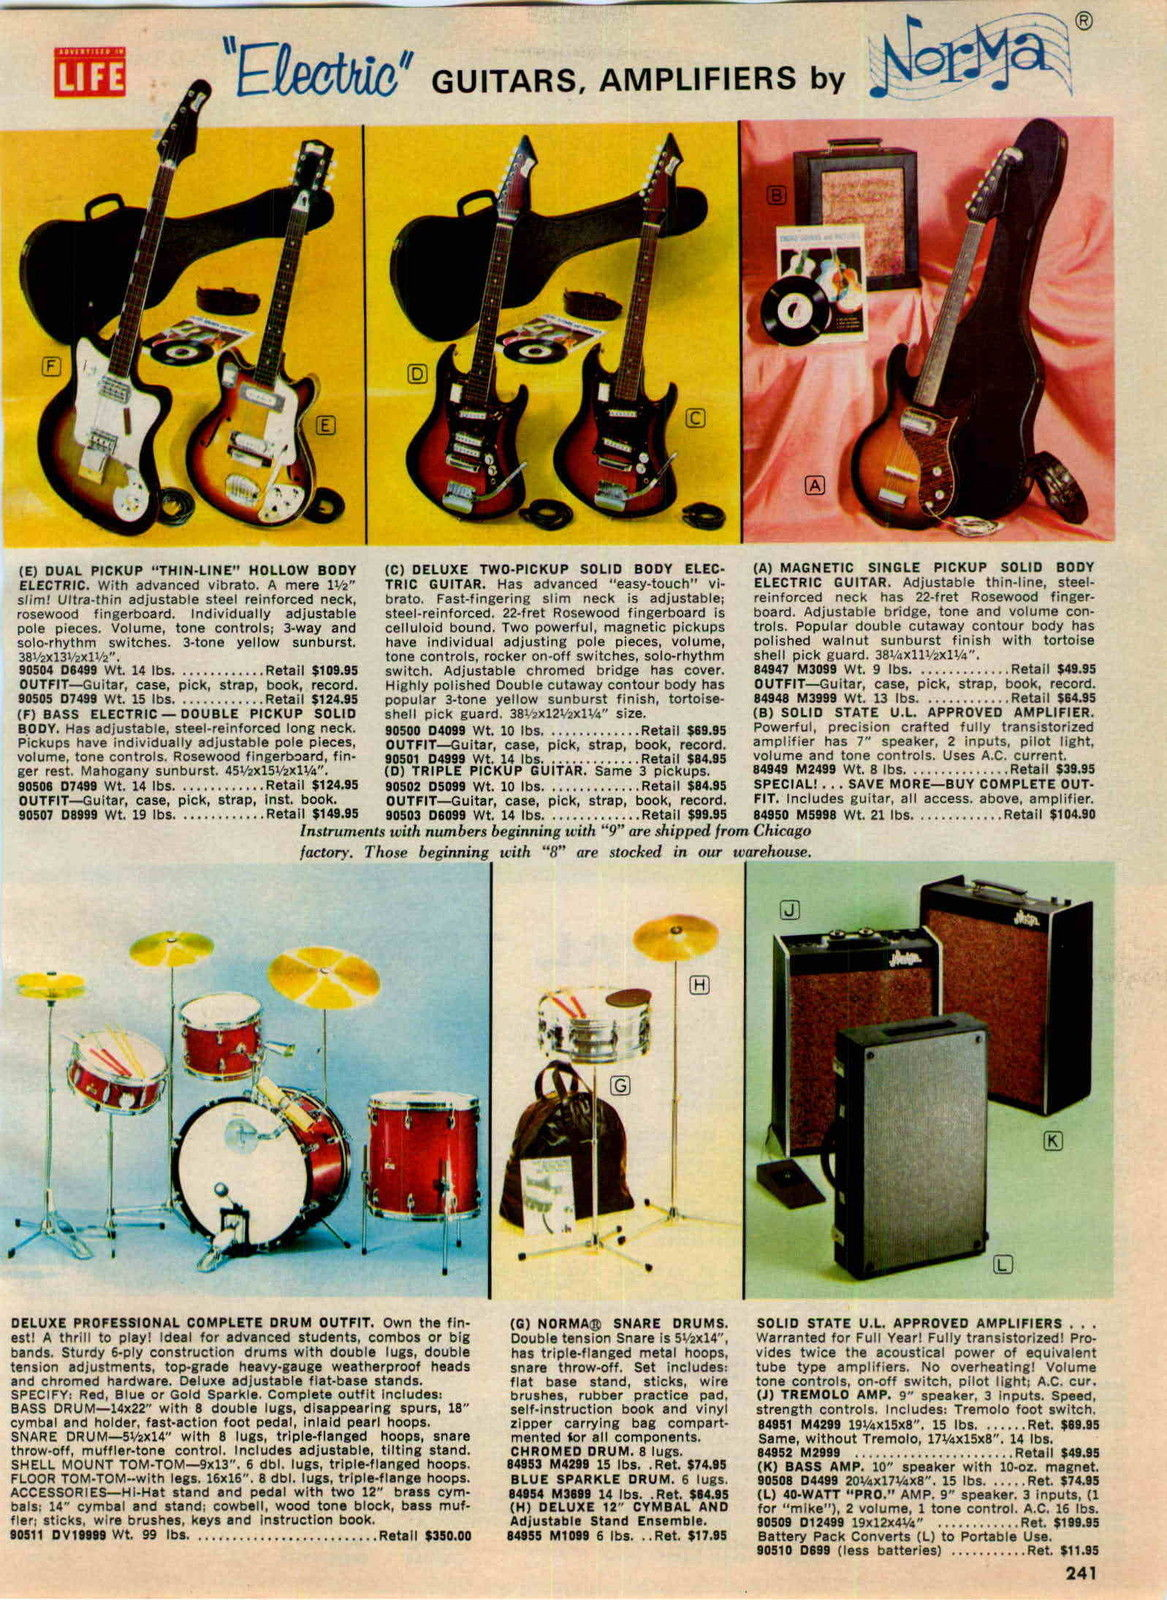 Norma guitars and amps